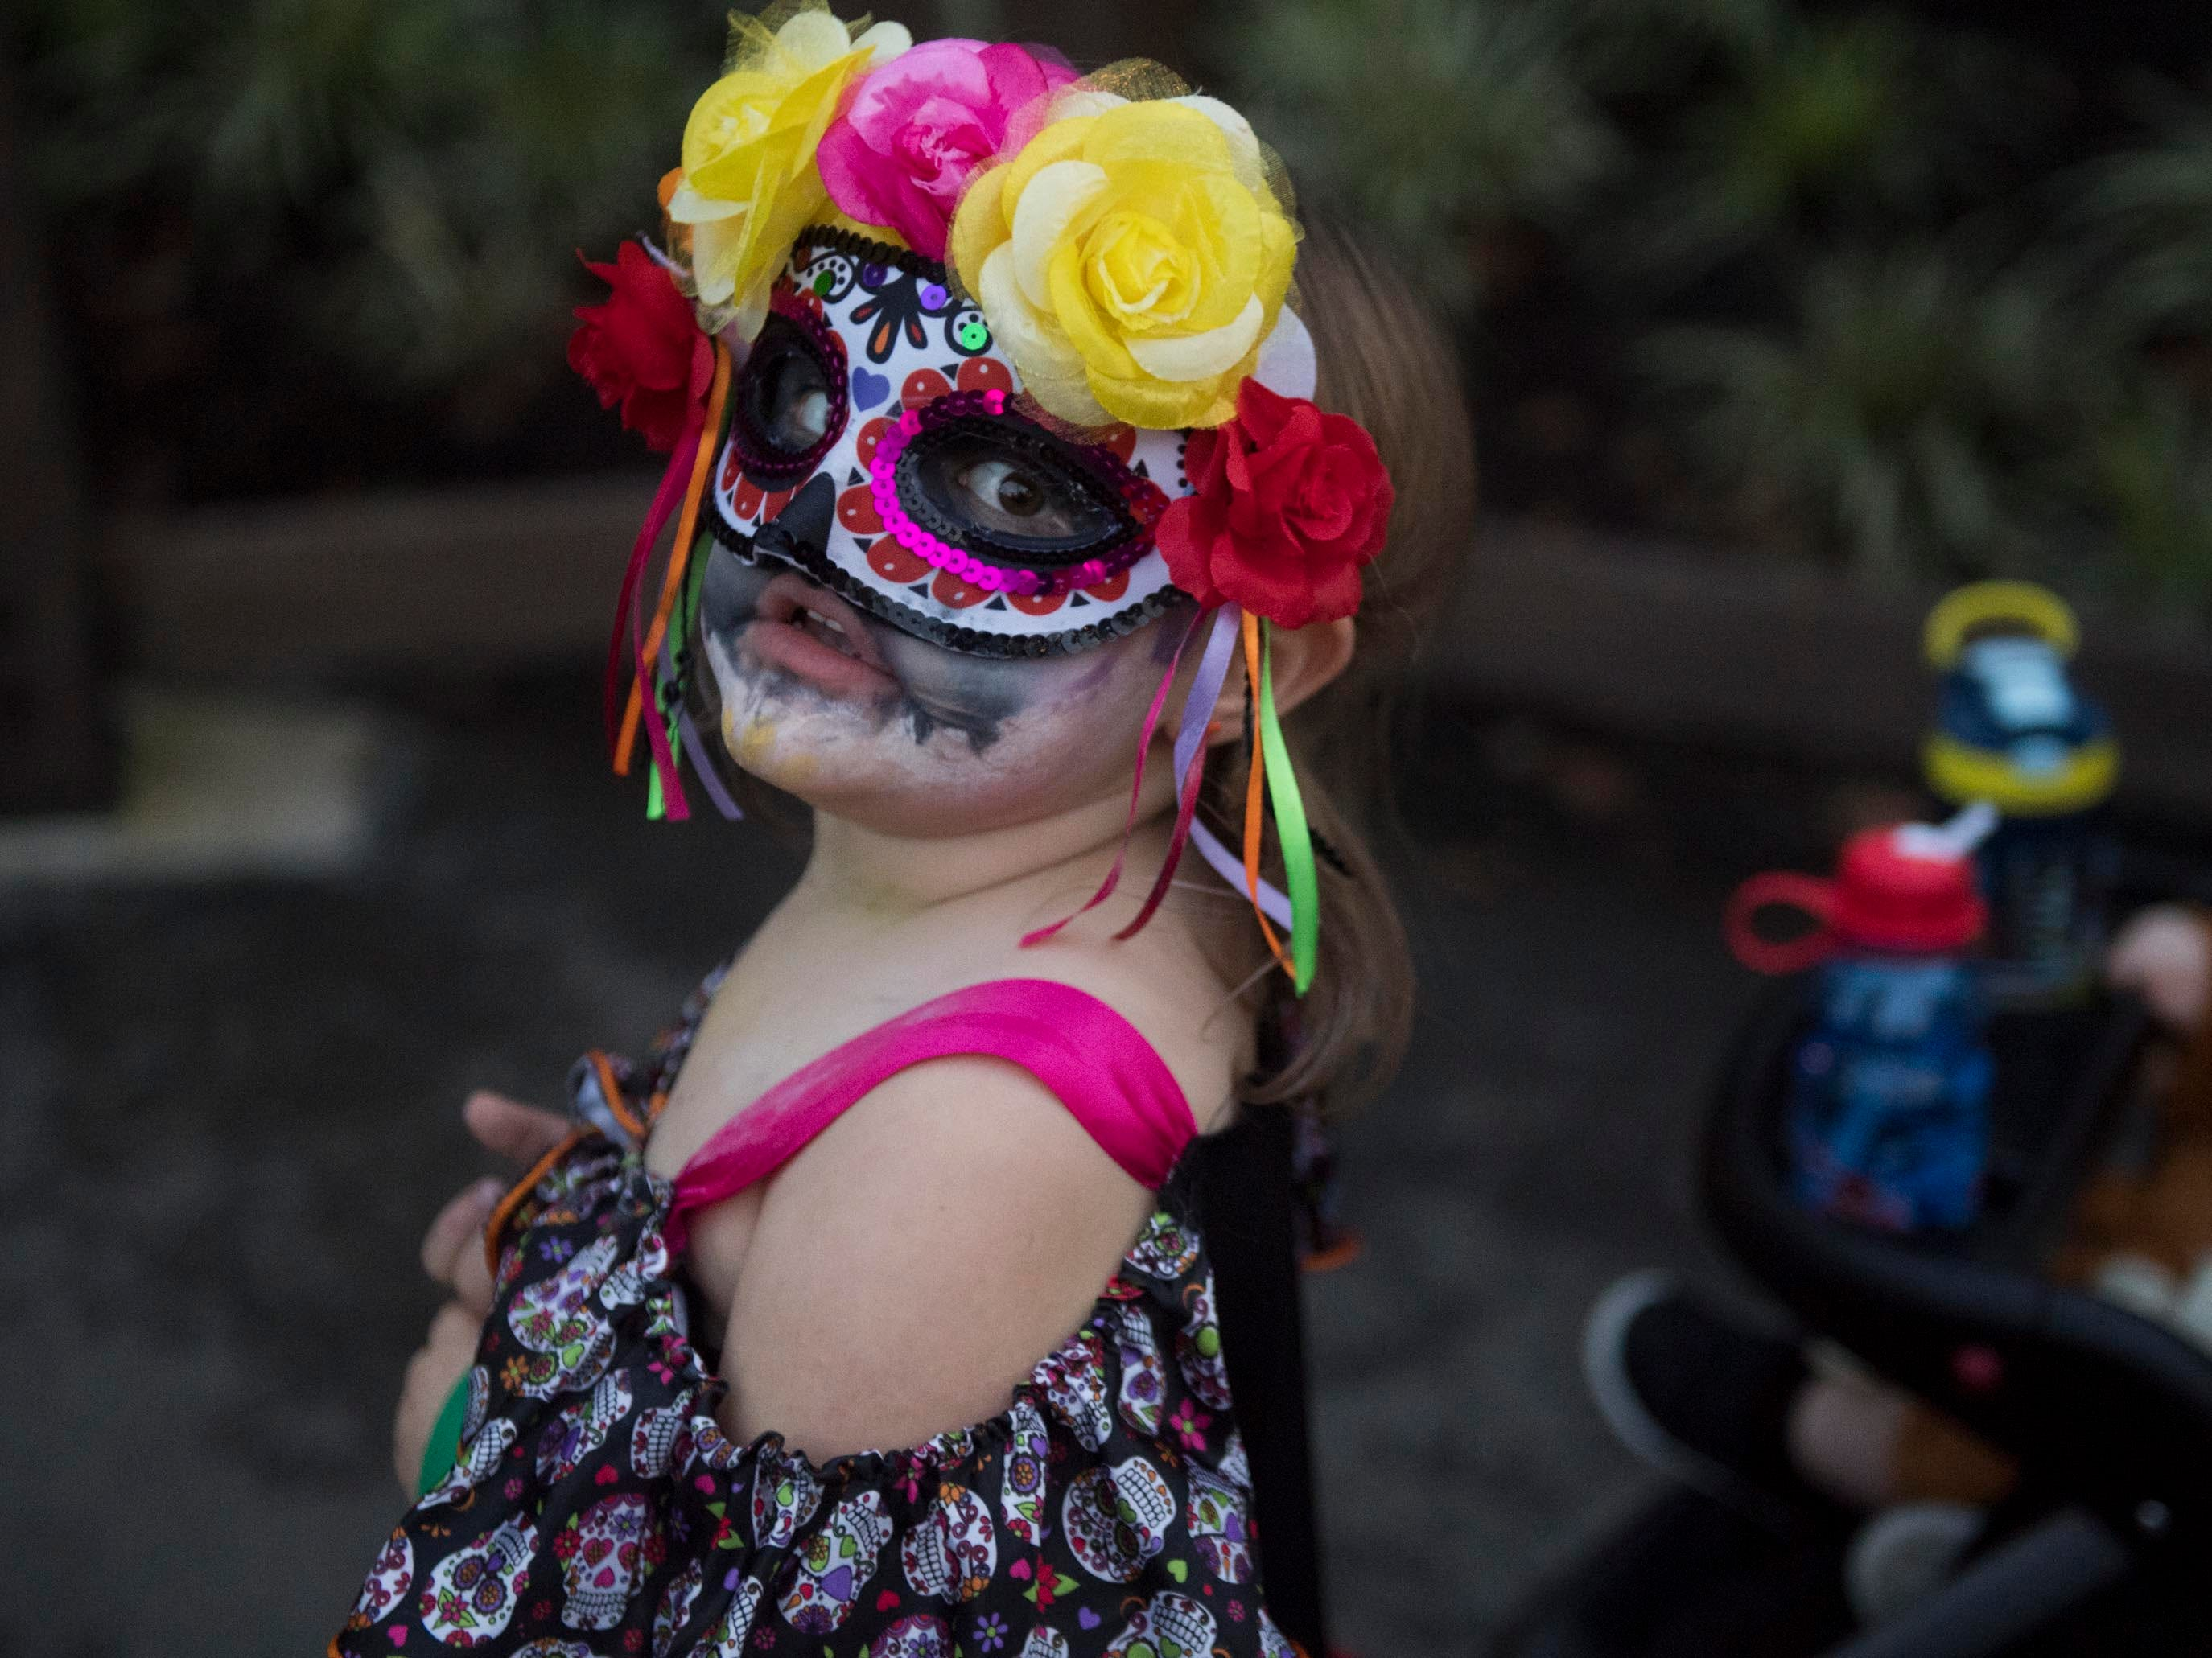 Lilly Swanson in Dia de los Muertos themed costume at Zoo Knoxville's Boo! at the Zoo on Saturday, October 20, 2018.